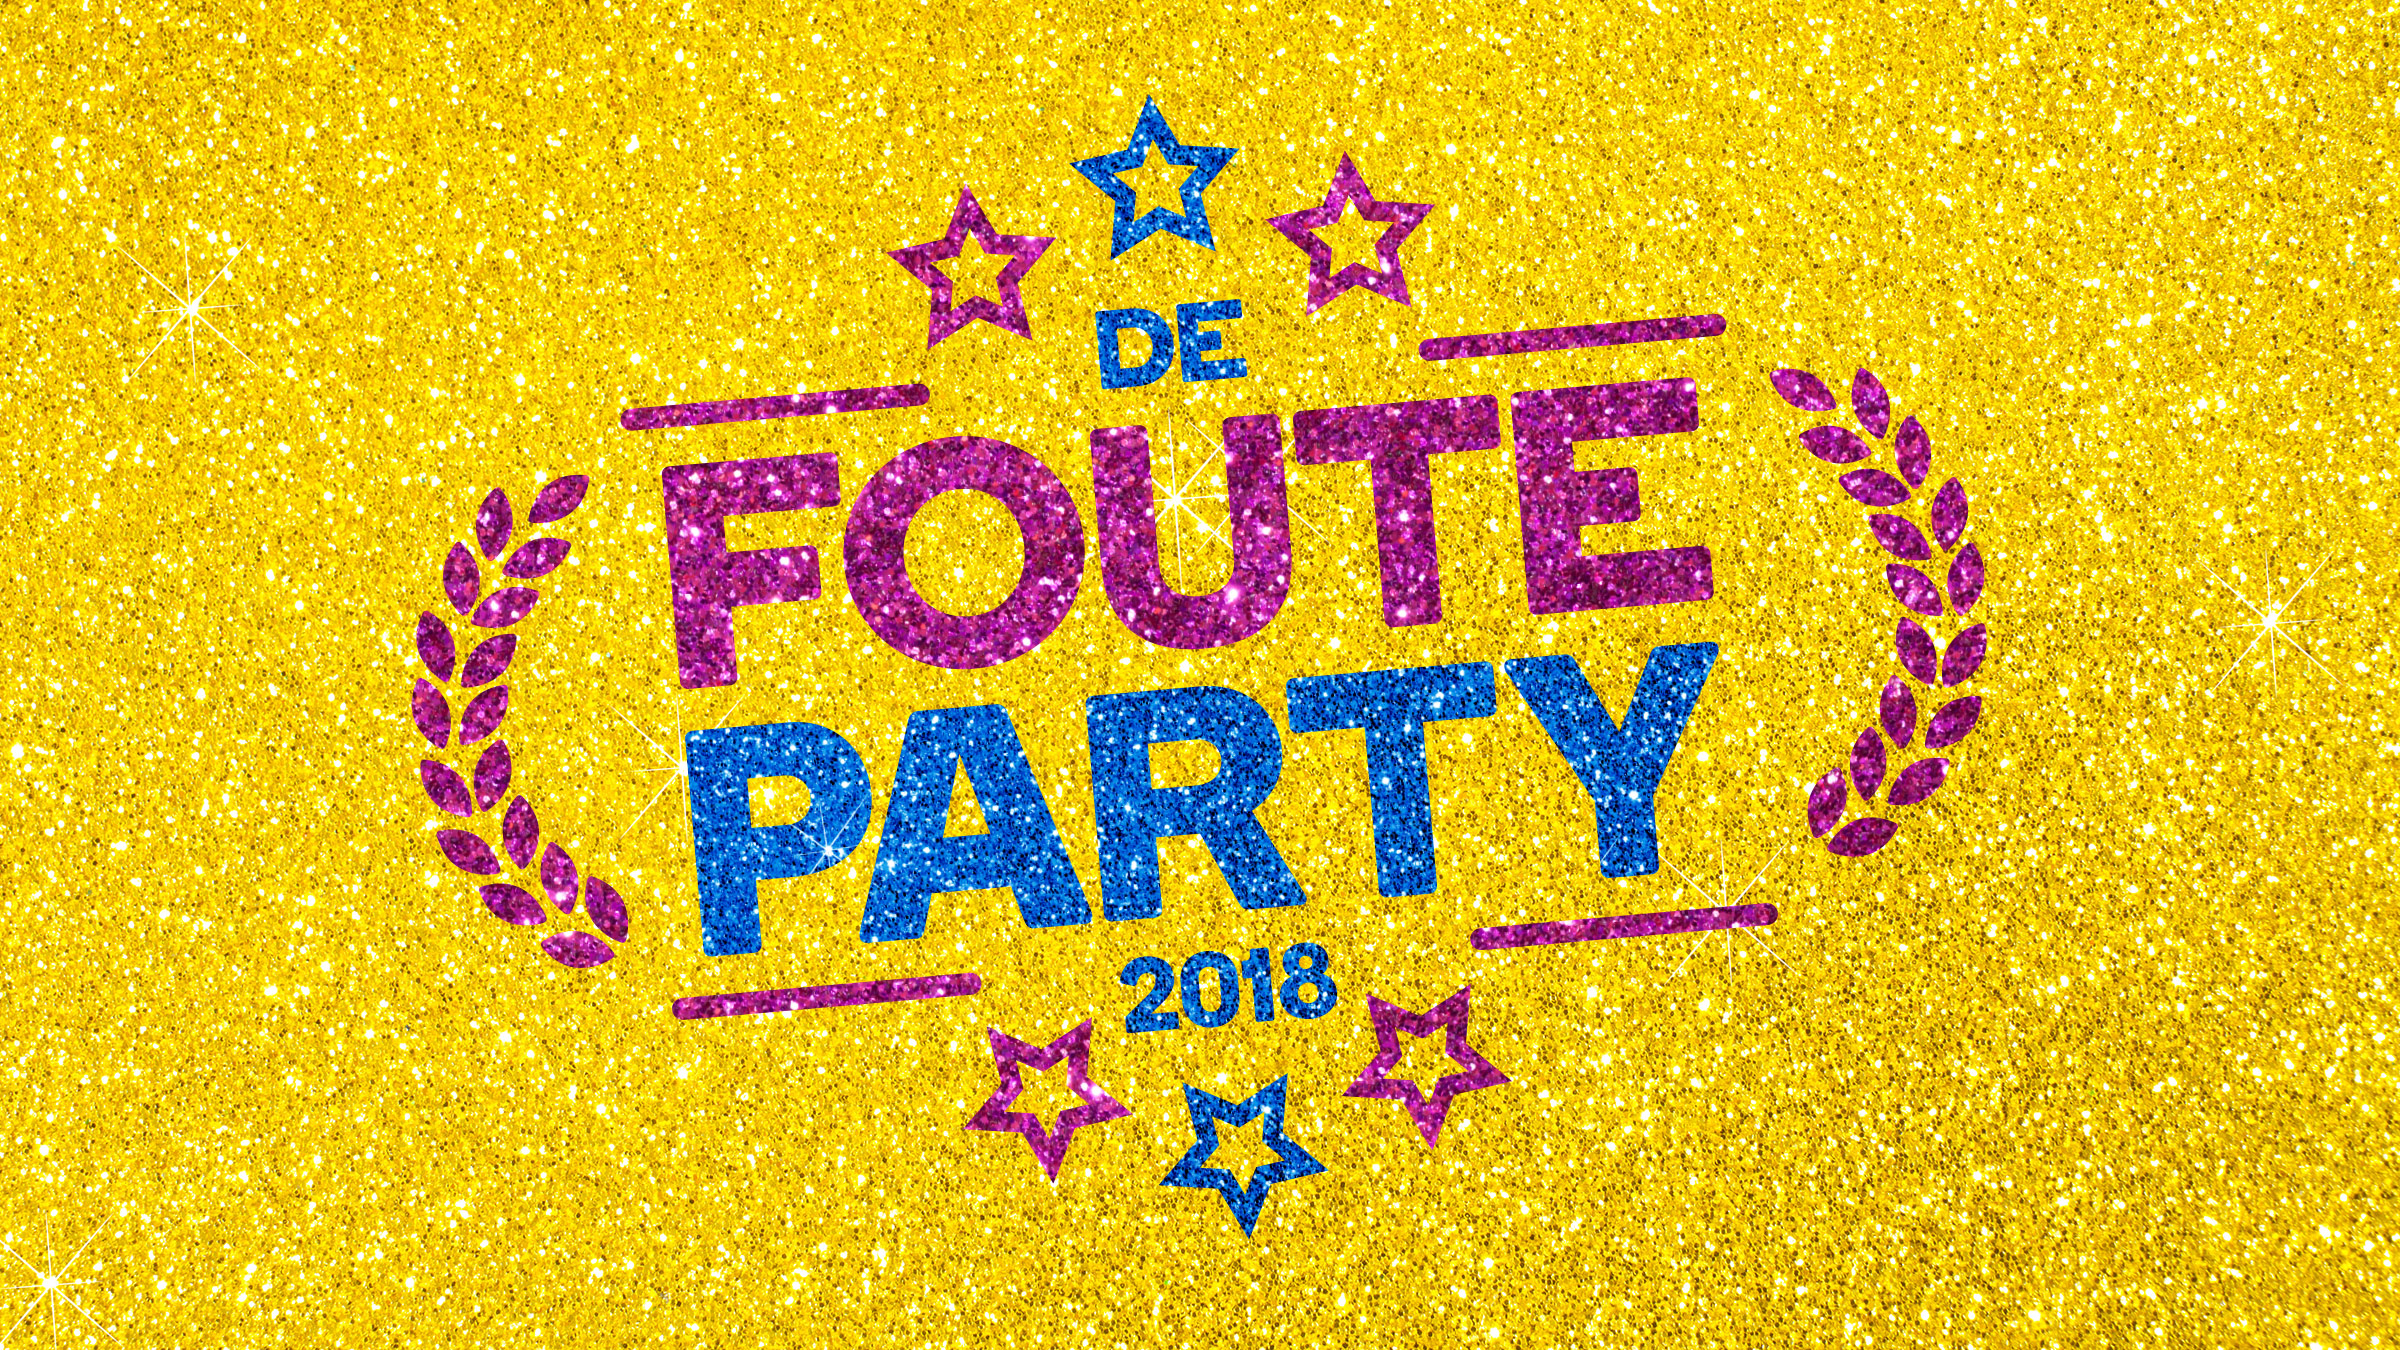 Qmusic teaser fouteparty2018